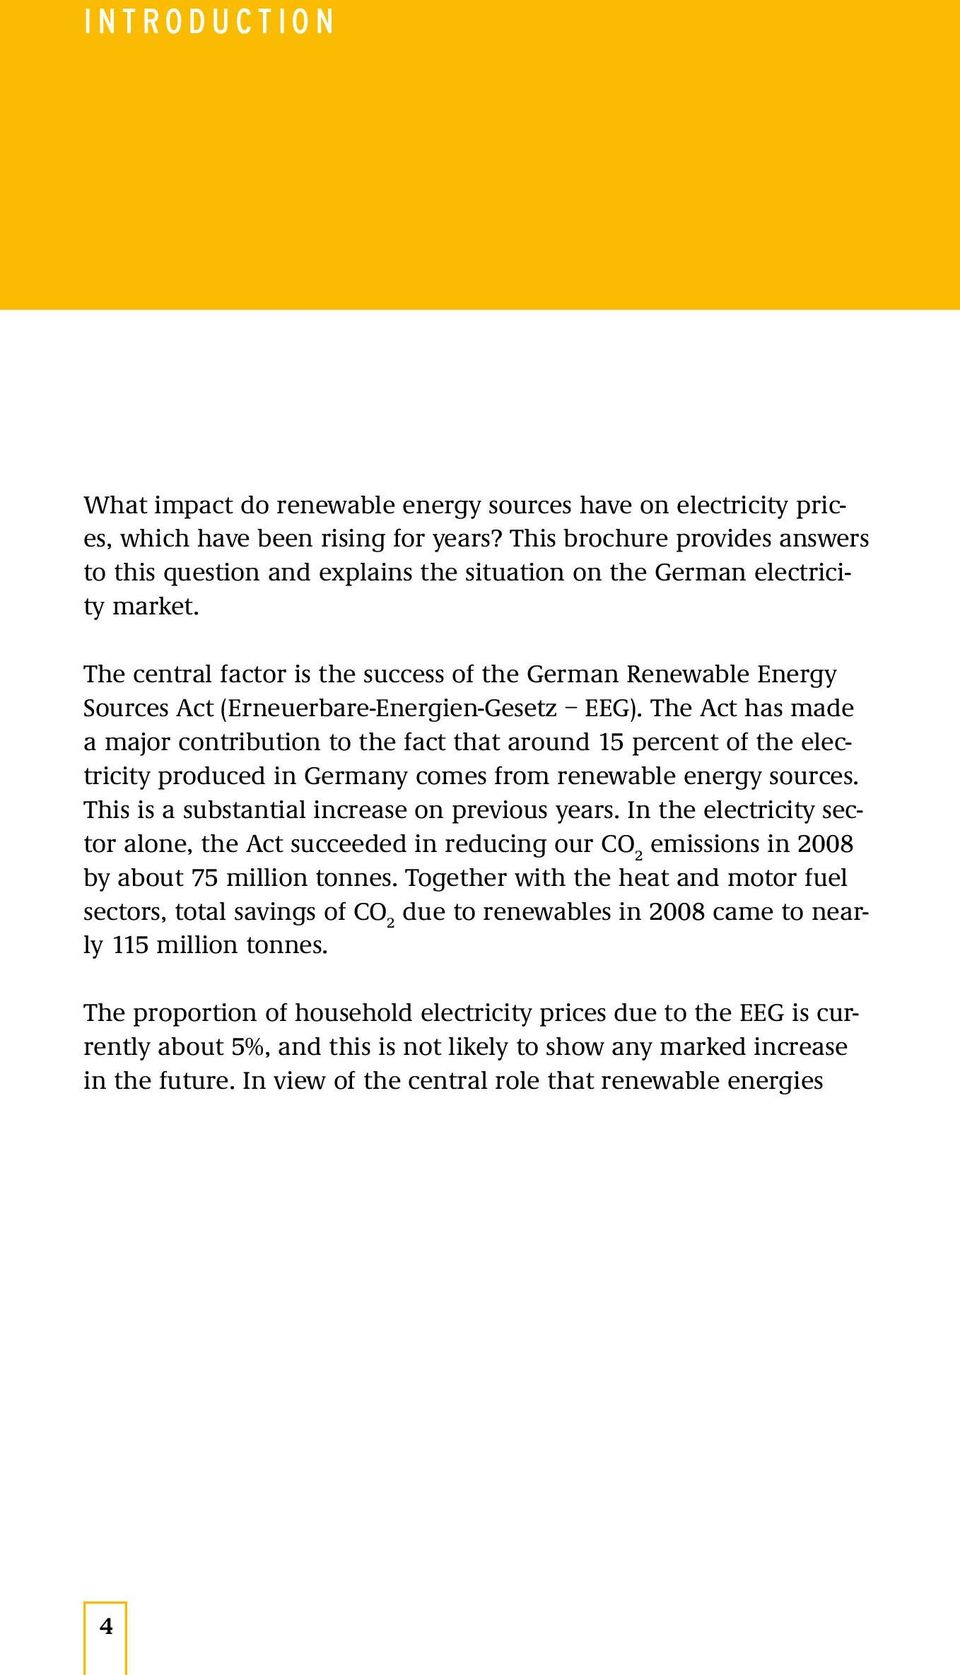 The central factor is the success of the German Renewable Energy Sources Act (Erneuerbare-Energien-Gesetz EEG).